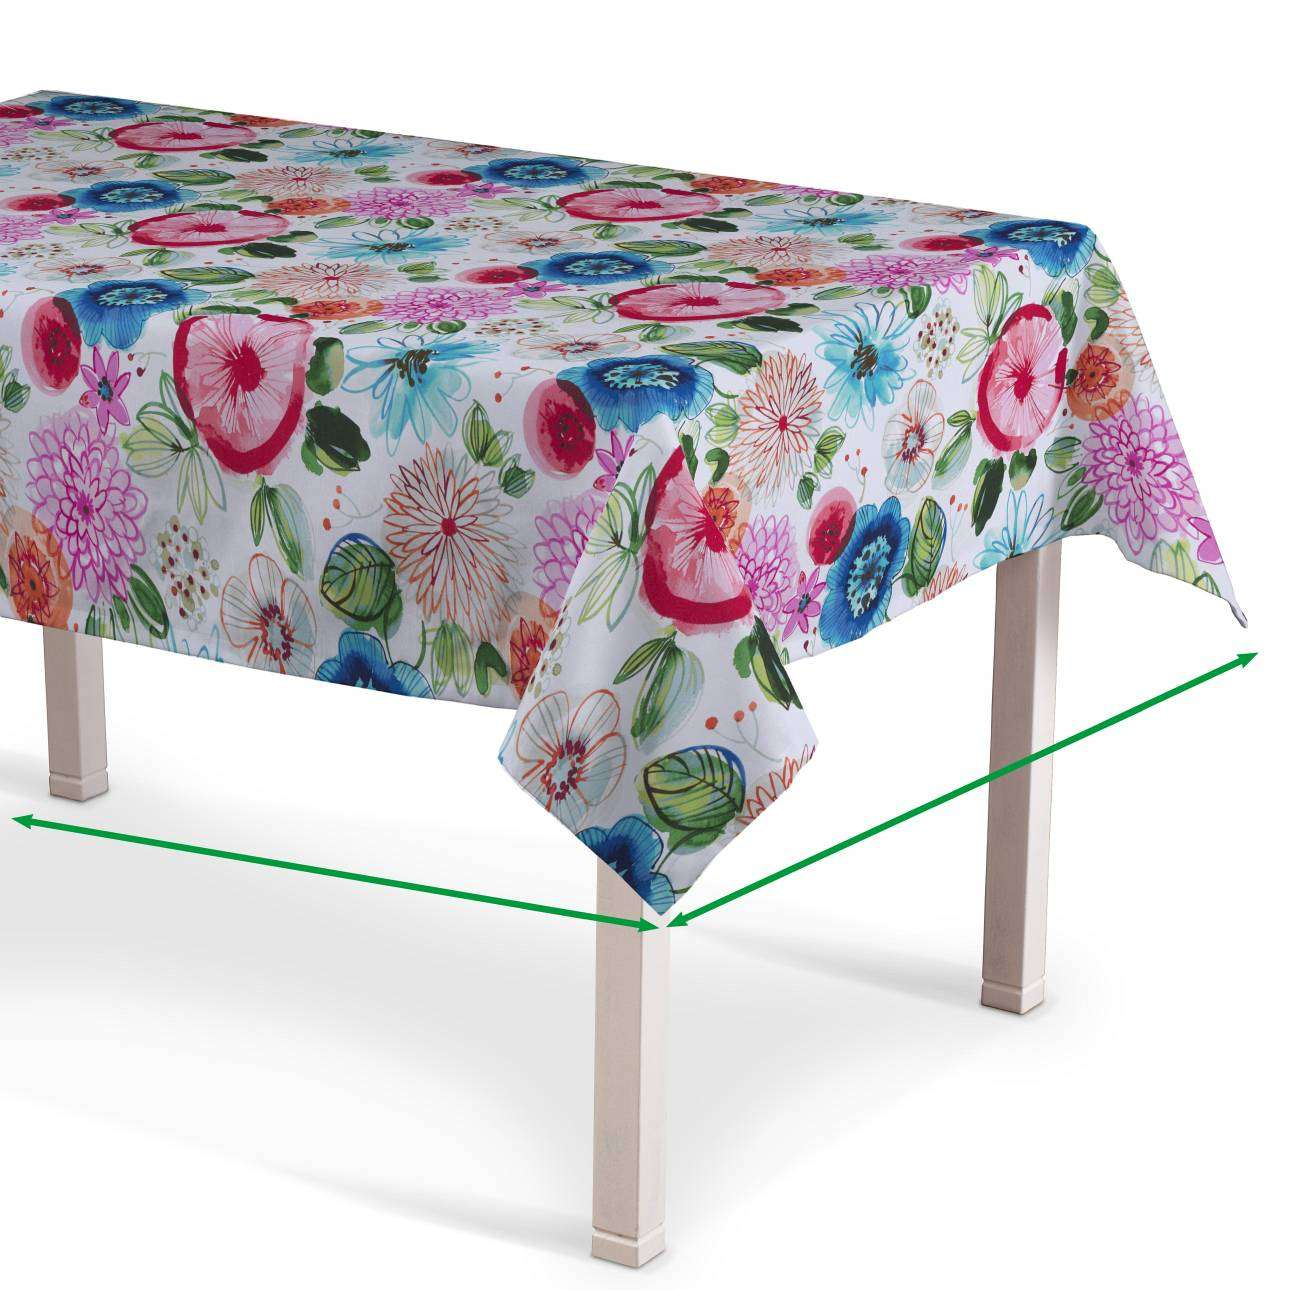 Rectangular tablecloth in collection New Art, fabric: 140-24